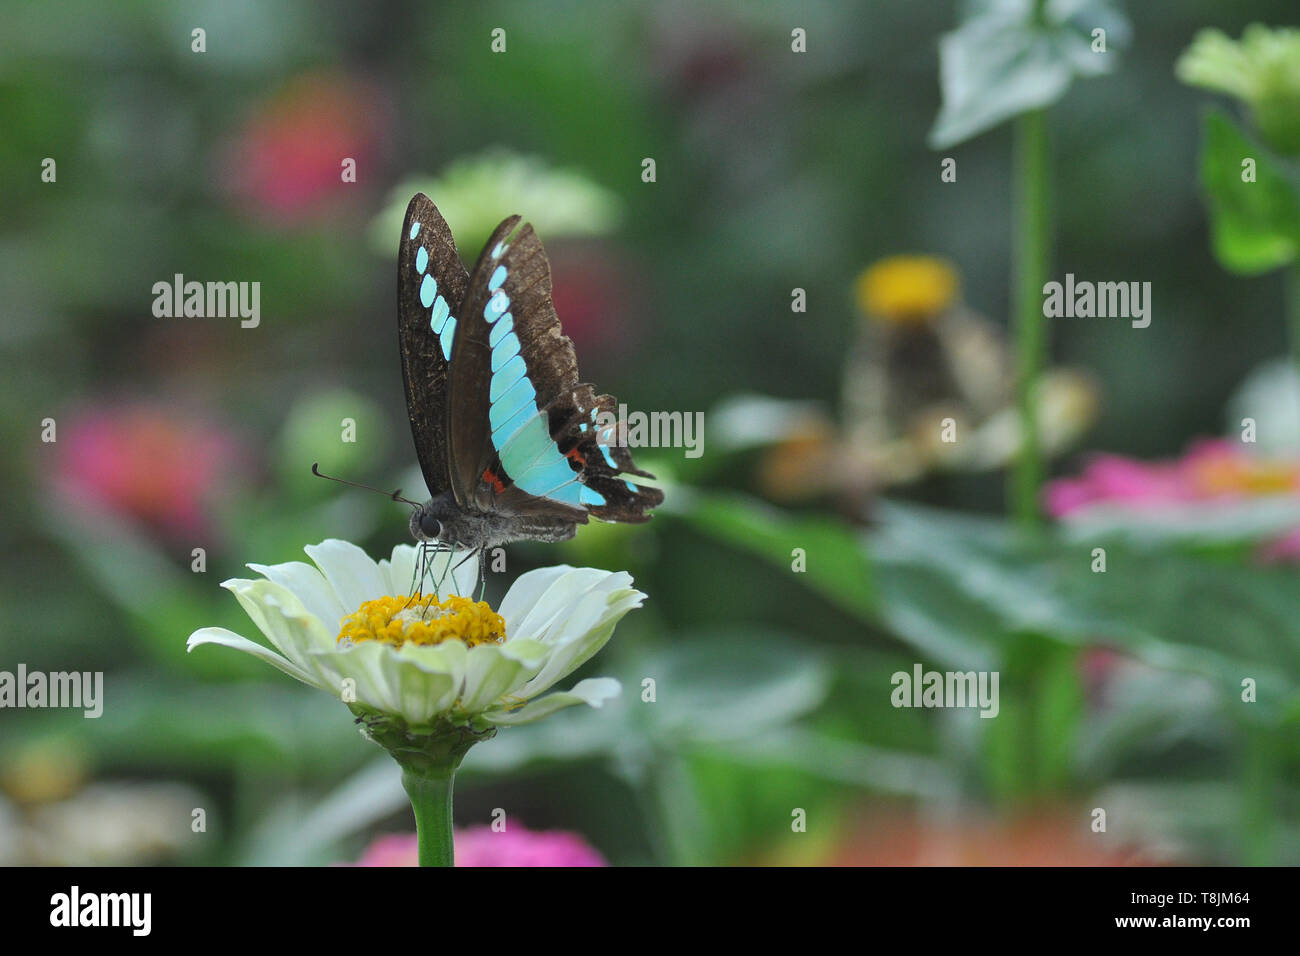 butterfly on zinnia flower with blur bokeh background Stock Photo